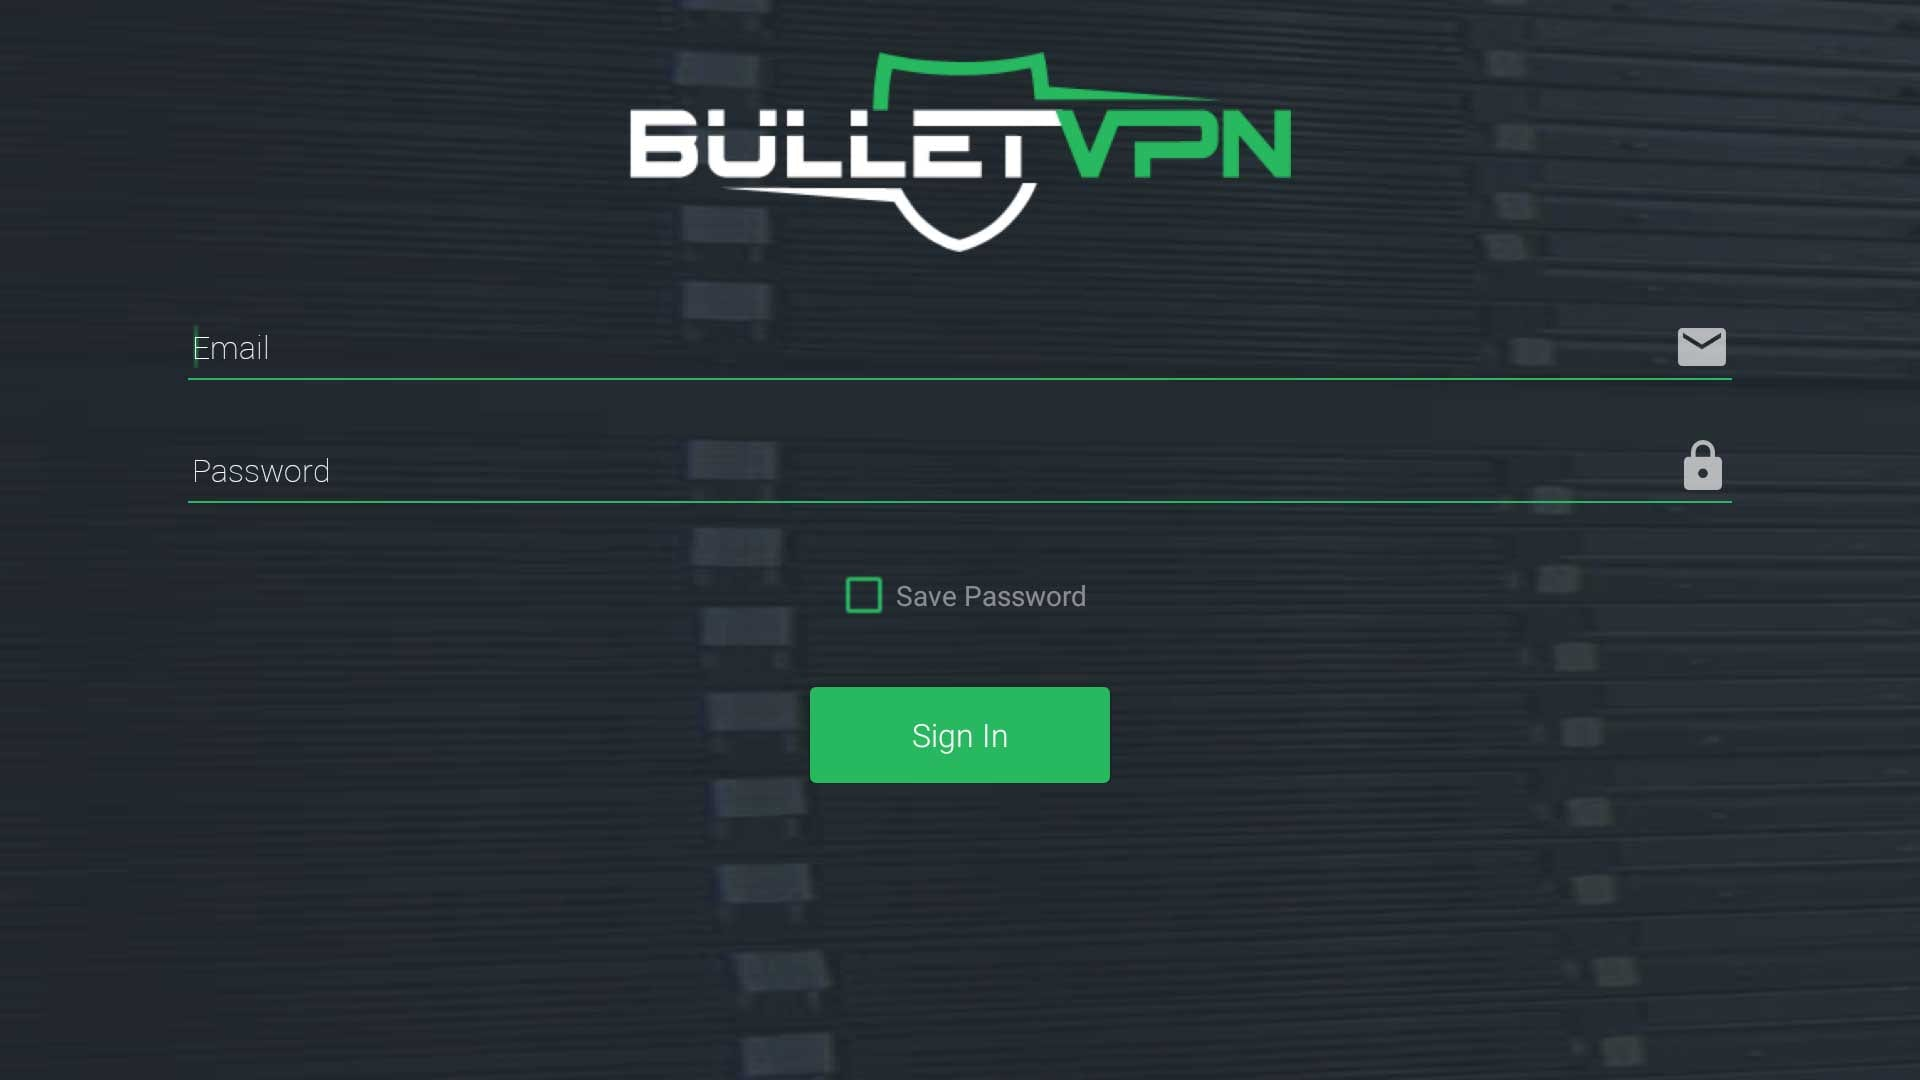 Enter Your BulletVPN Credentials